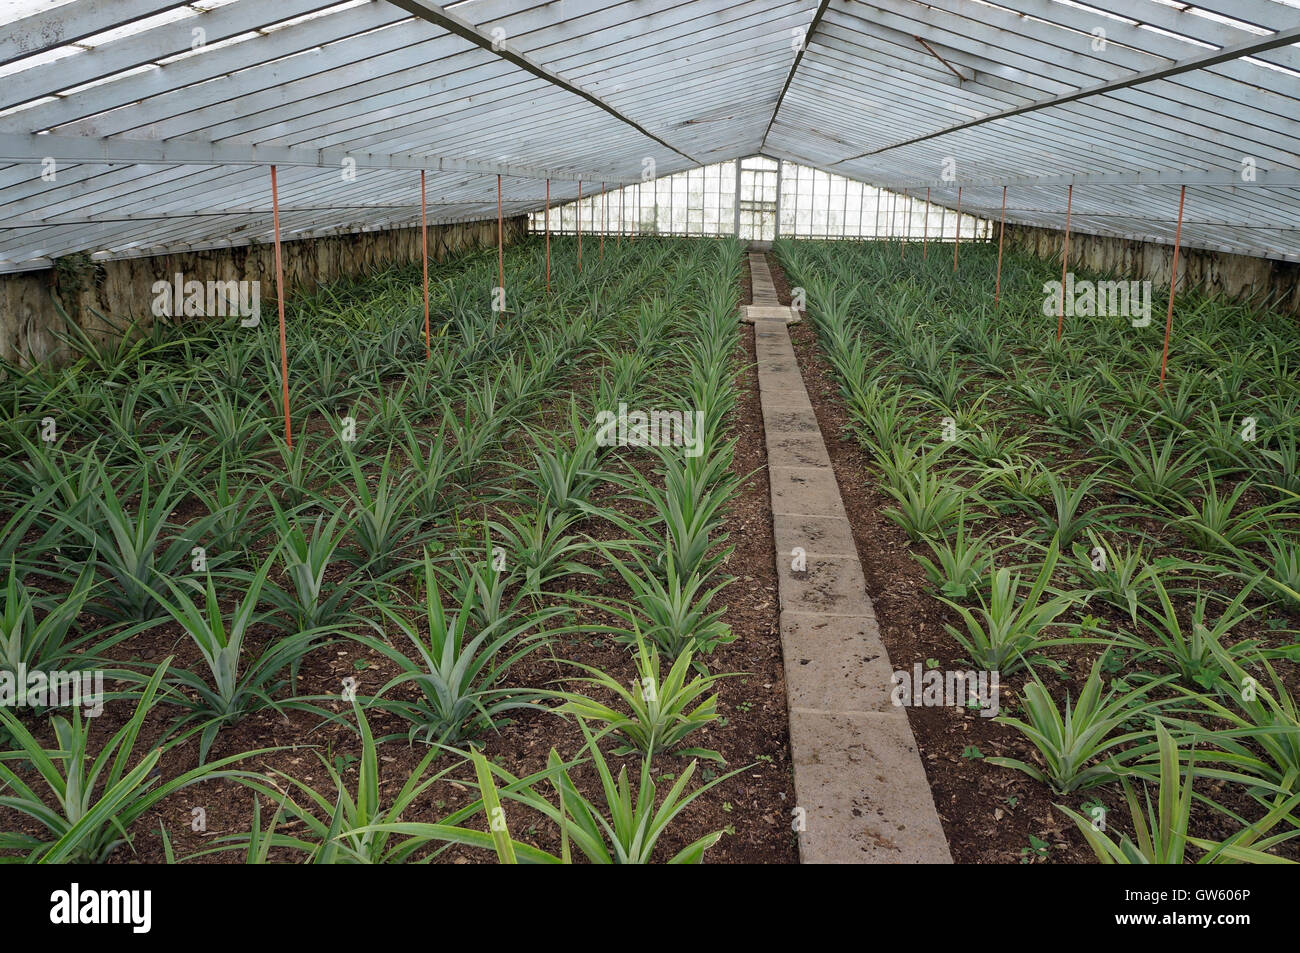 Pineapple plantation on greenhouses. S.Miguel Island, Azores. Portugal Stock Photo